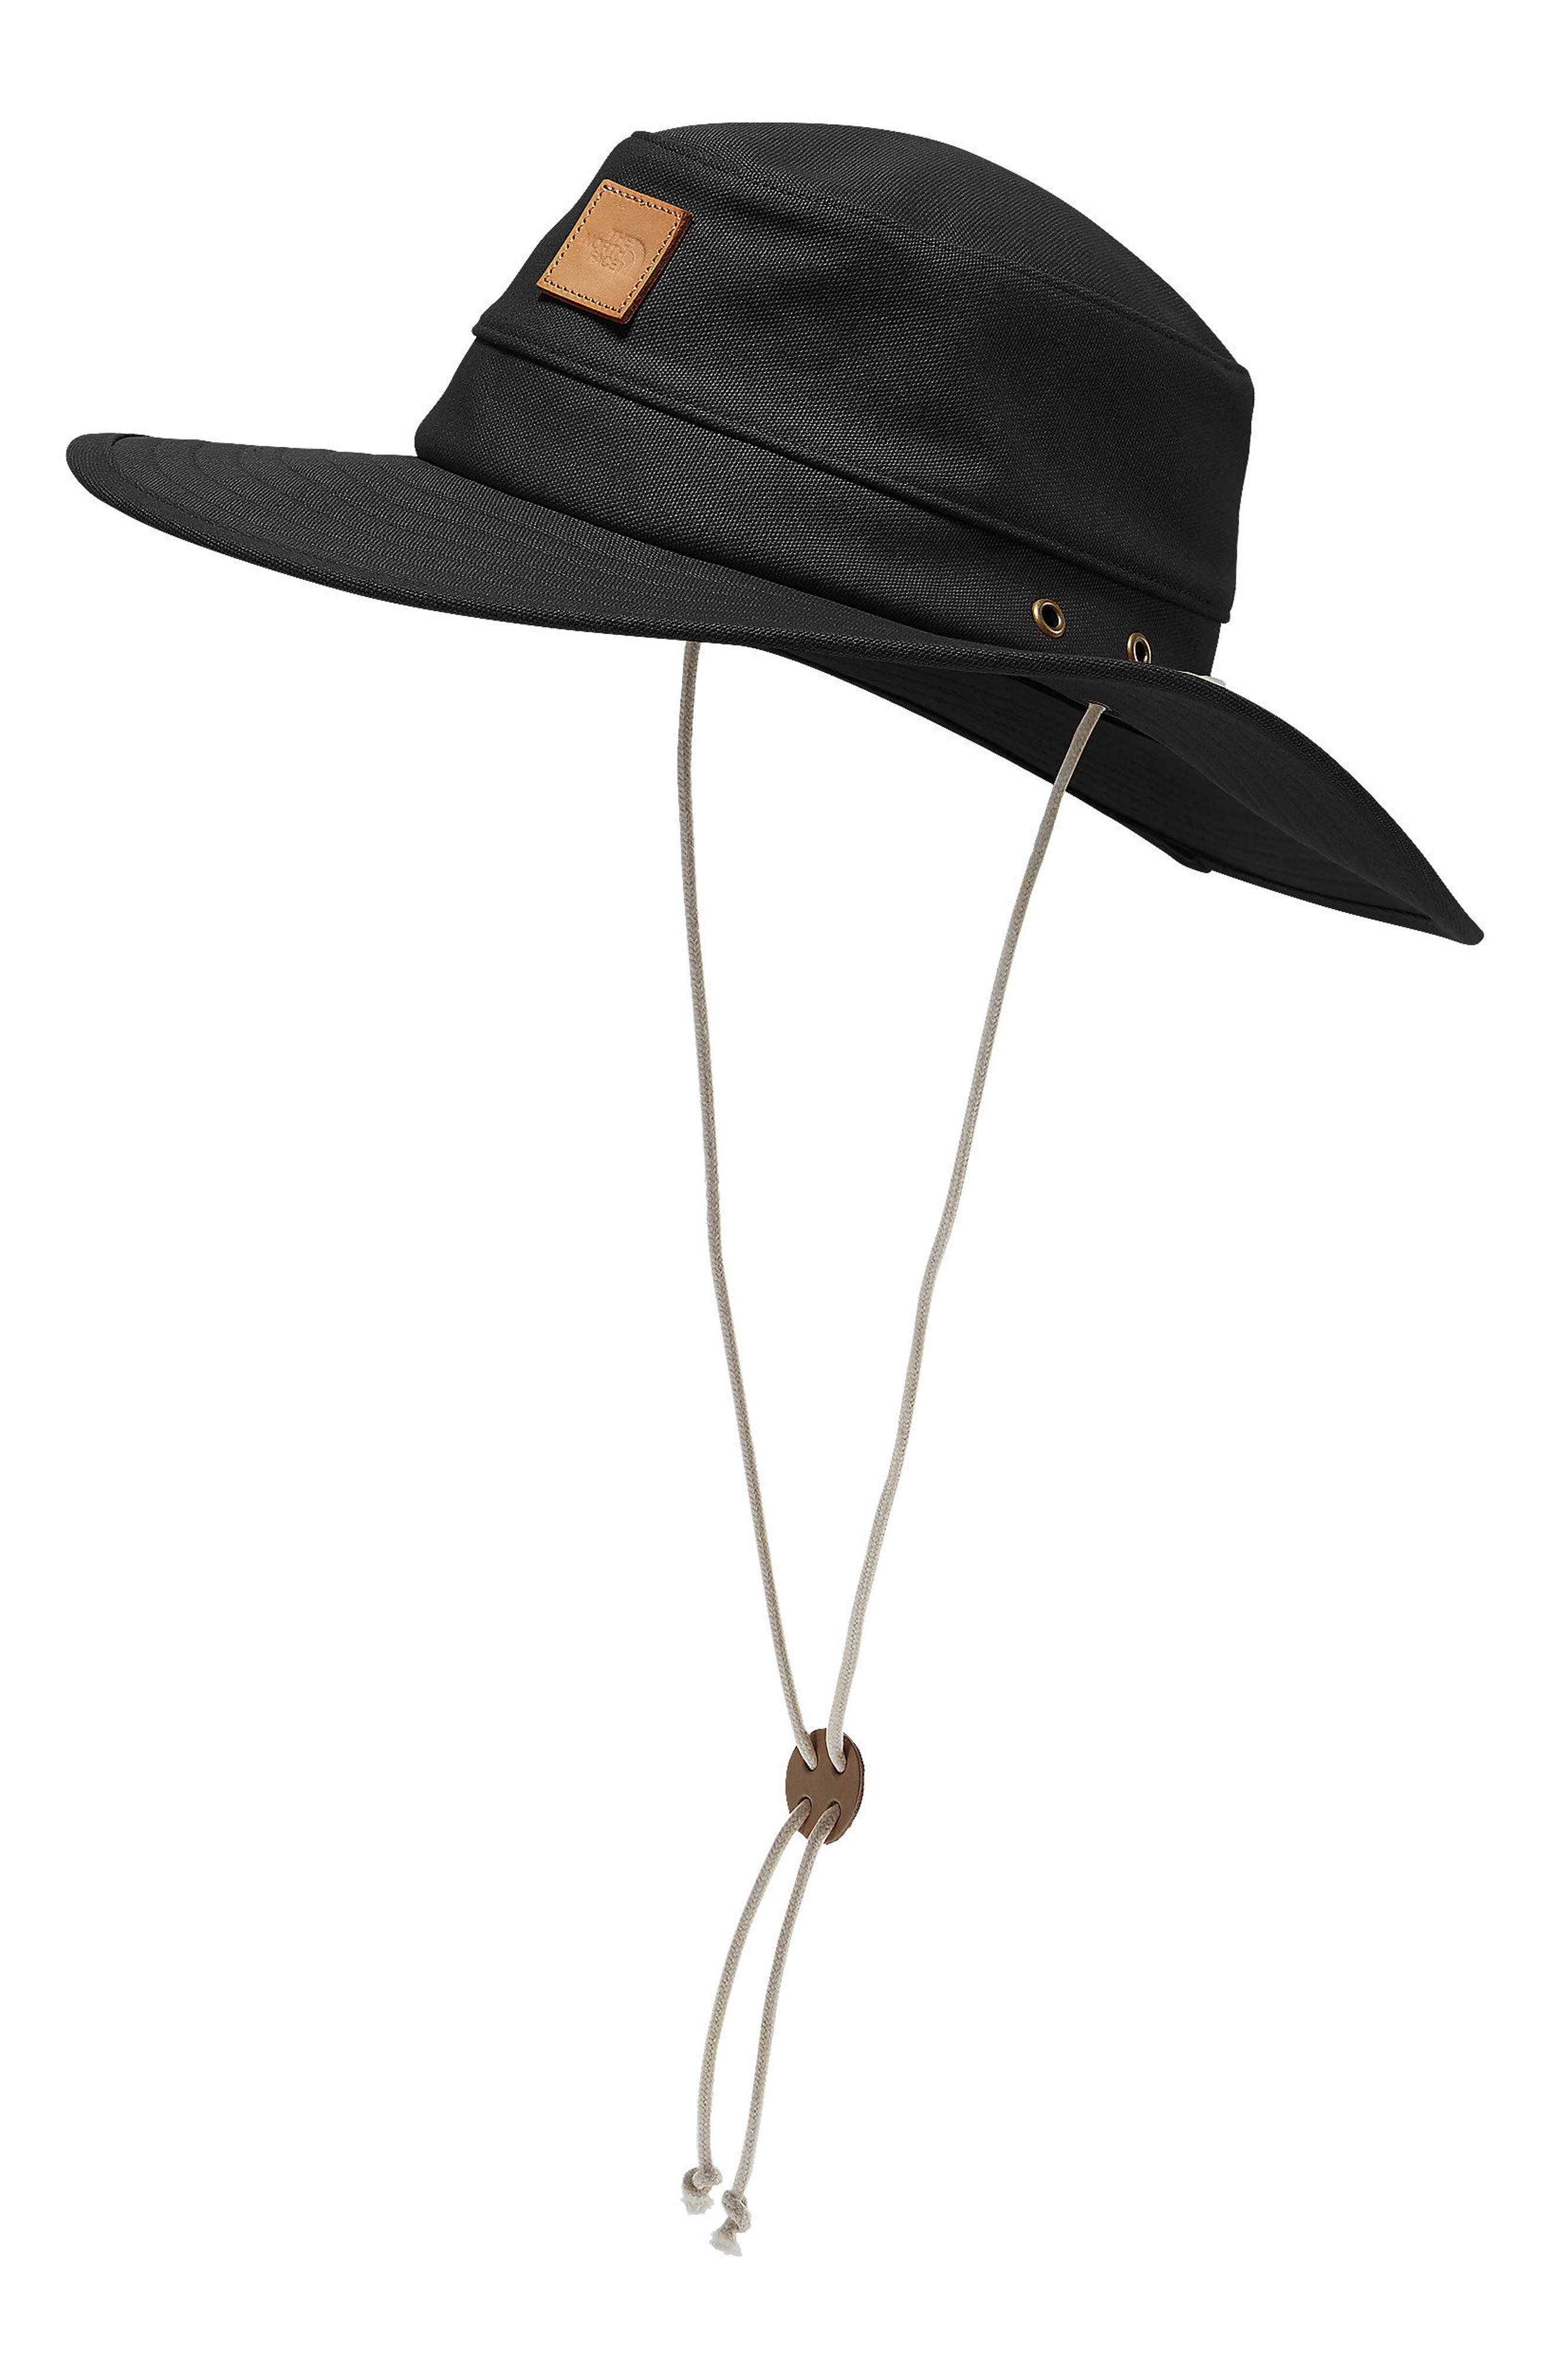 The North Face Naturalist Canvas Brimmer Hat